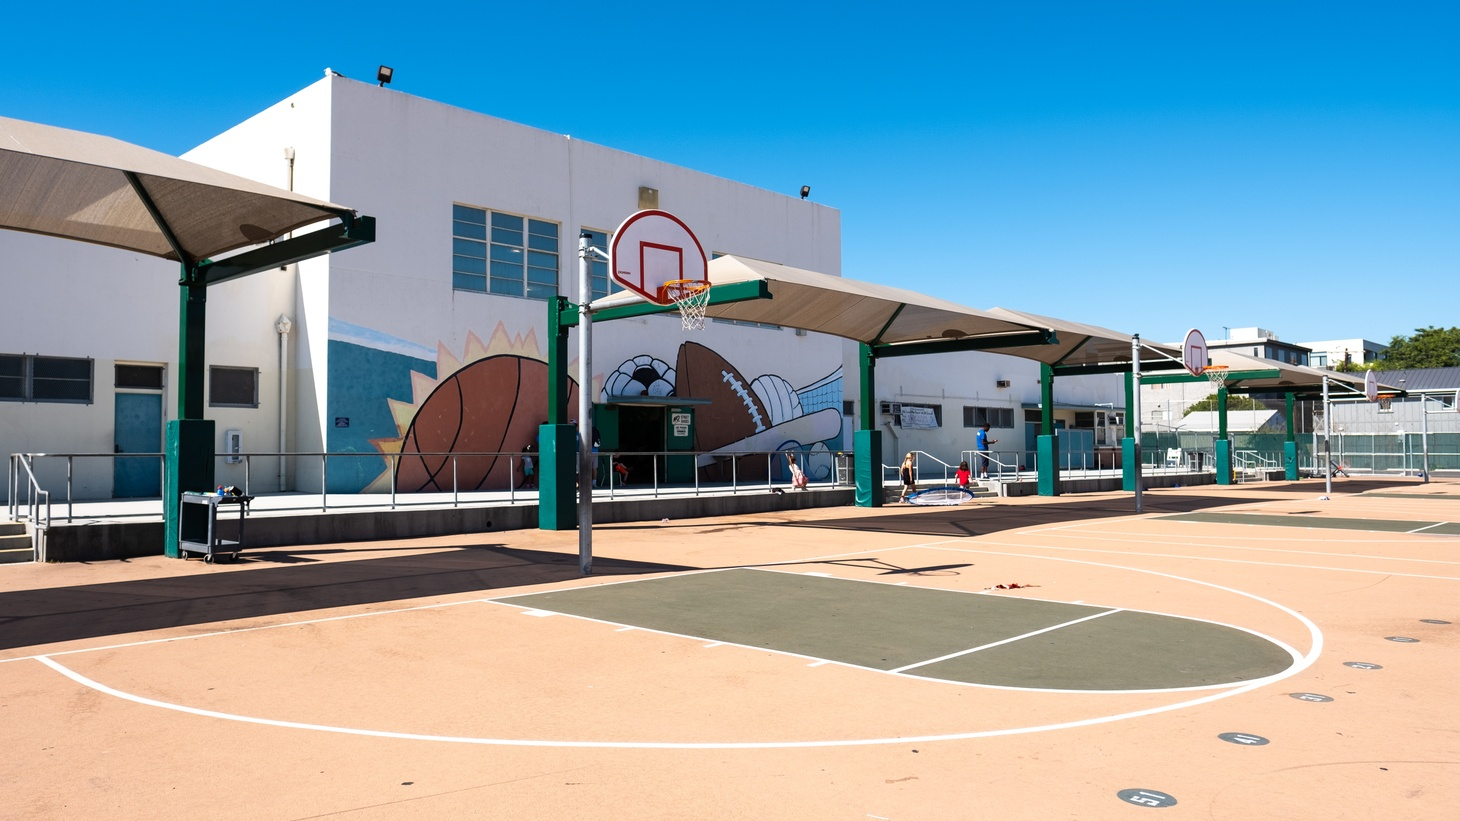 Gymnasium and basketball courts at Palms Middle School, Los Angeles.